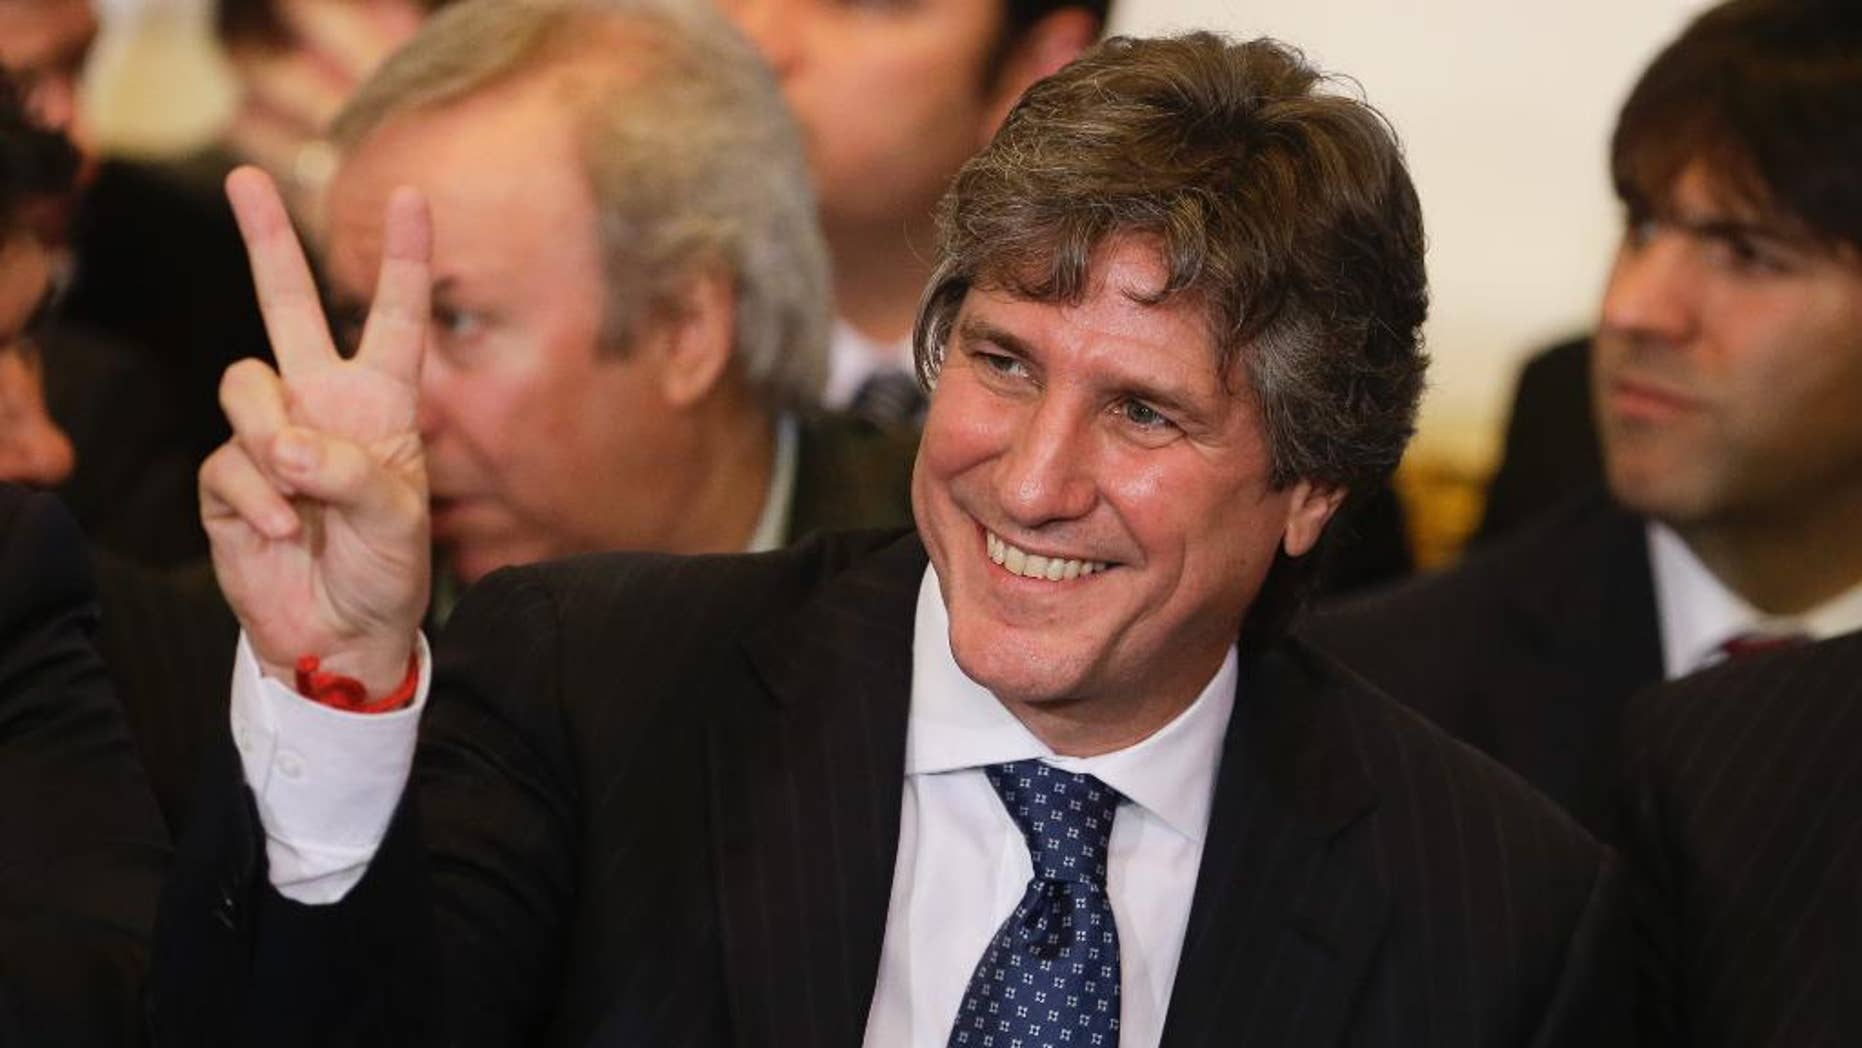 FILE- In this  July 31, 2014, file photo, Argentina's Vice President Amado Boudou gestures to supporters before the speech of Argentine President Cristina Fernandez at Casa Rosada Presidential Palace in Buenos Aires, Argentina. Argentina's highest tribunal confirmed on Thursday, June 25, 2015, bribery charges against Boudou. If found guilty, the vice president could face prison and be barred for life from public office. (AP Photo/Victor R. Caivano, File)